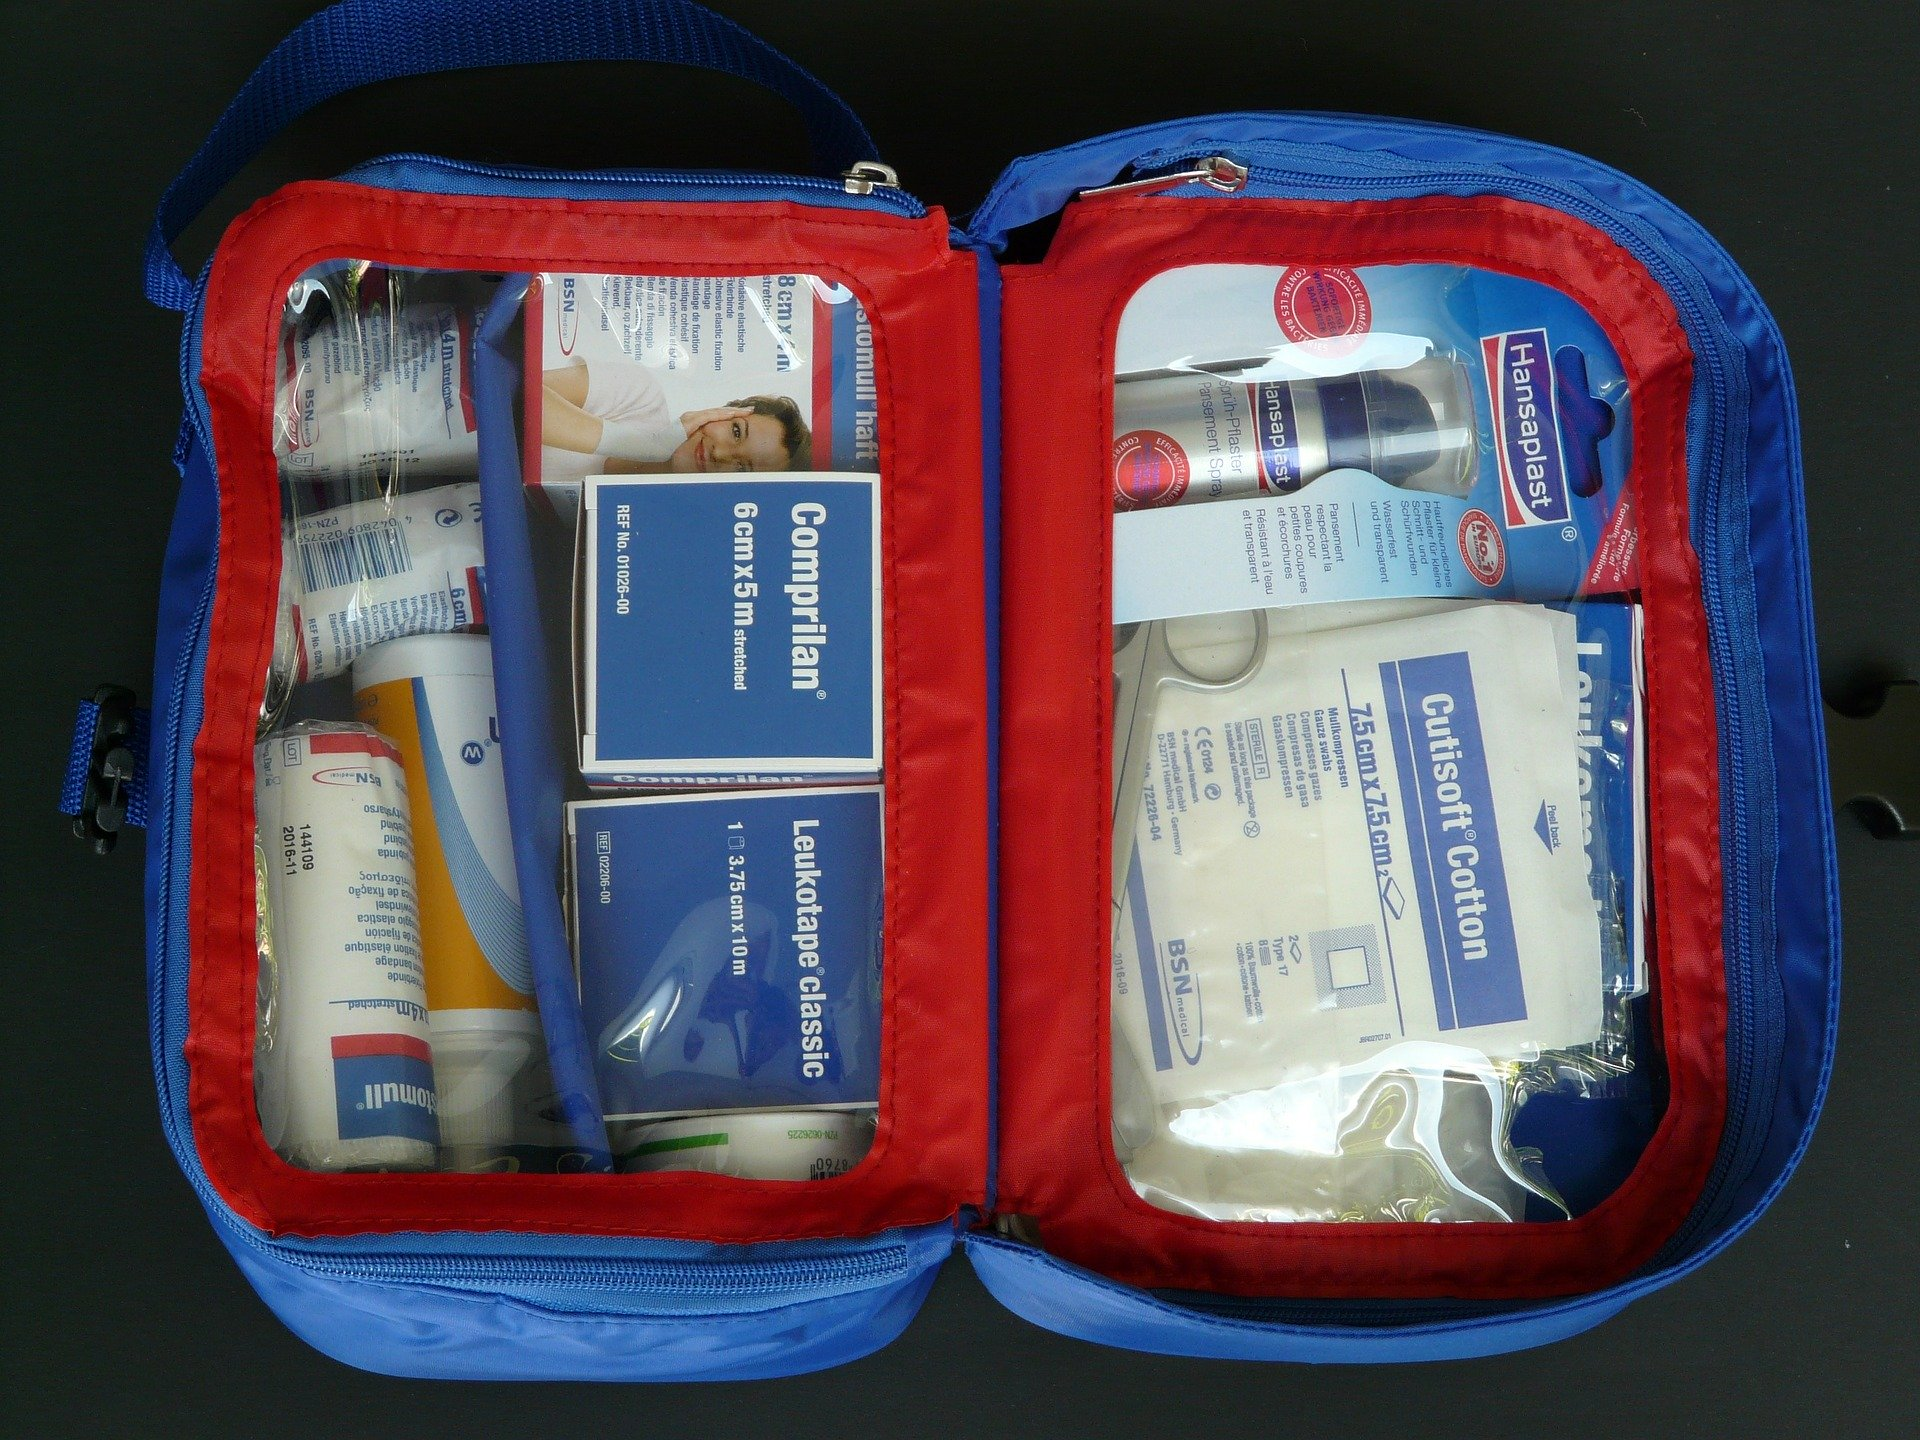 First Aid Kit travel essentials safe travel